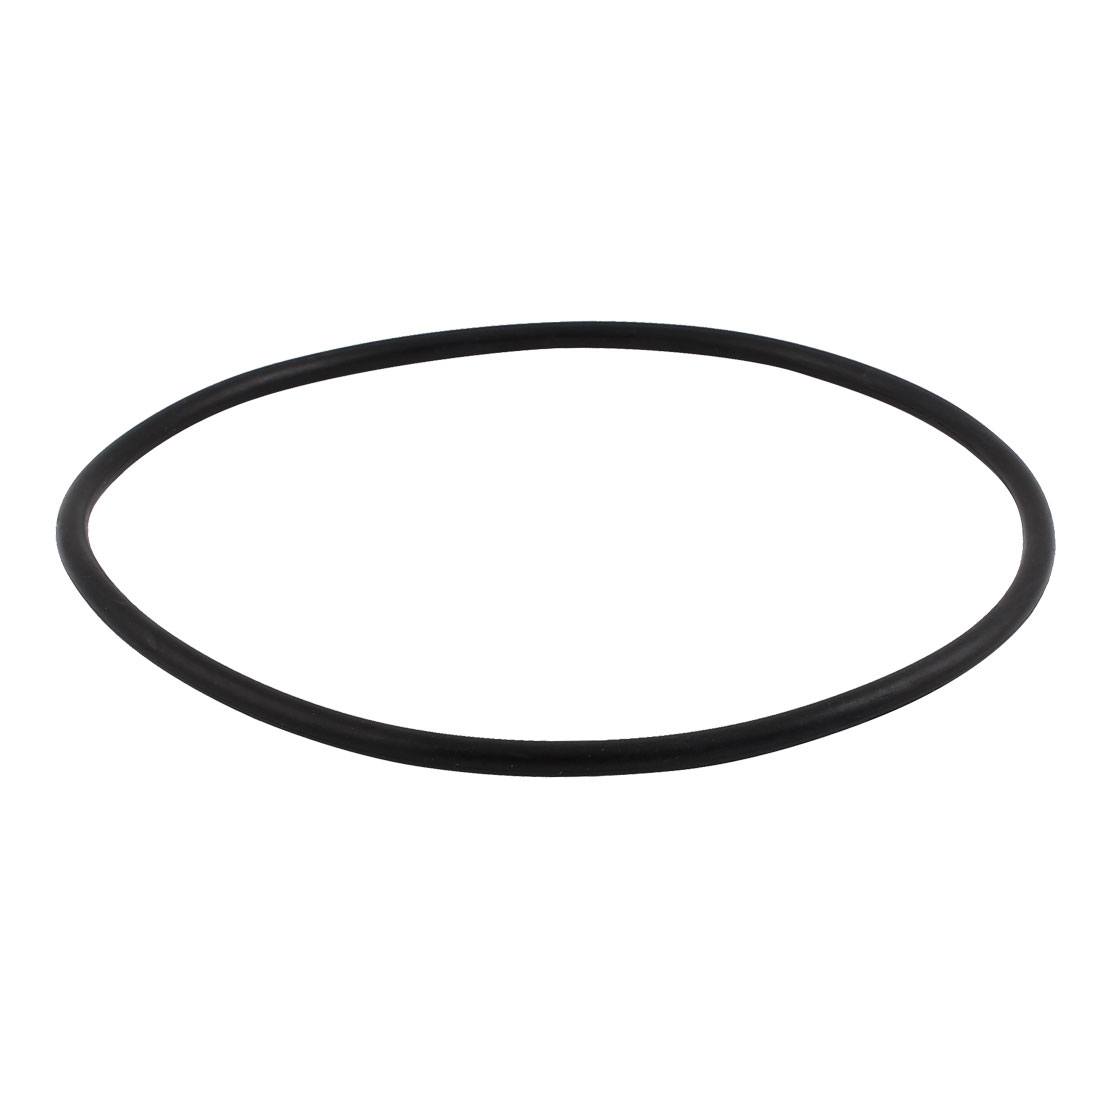 Black Universal O-Ring 245mm x 8.6mm BUNA-N Material Oil Seal Washers Grommets